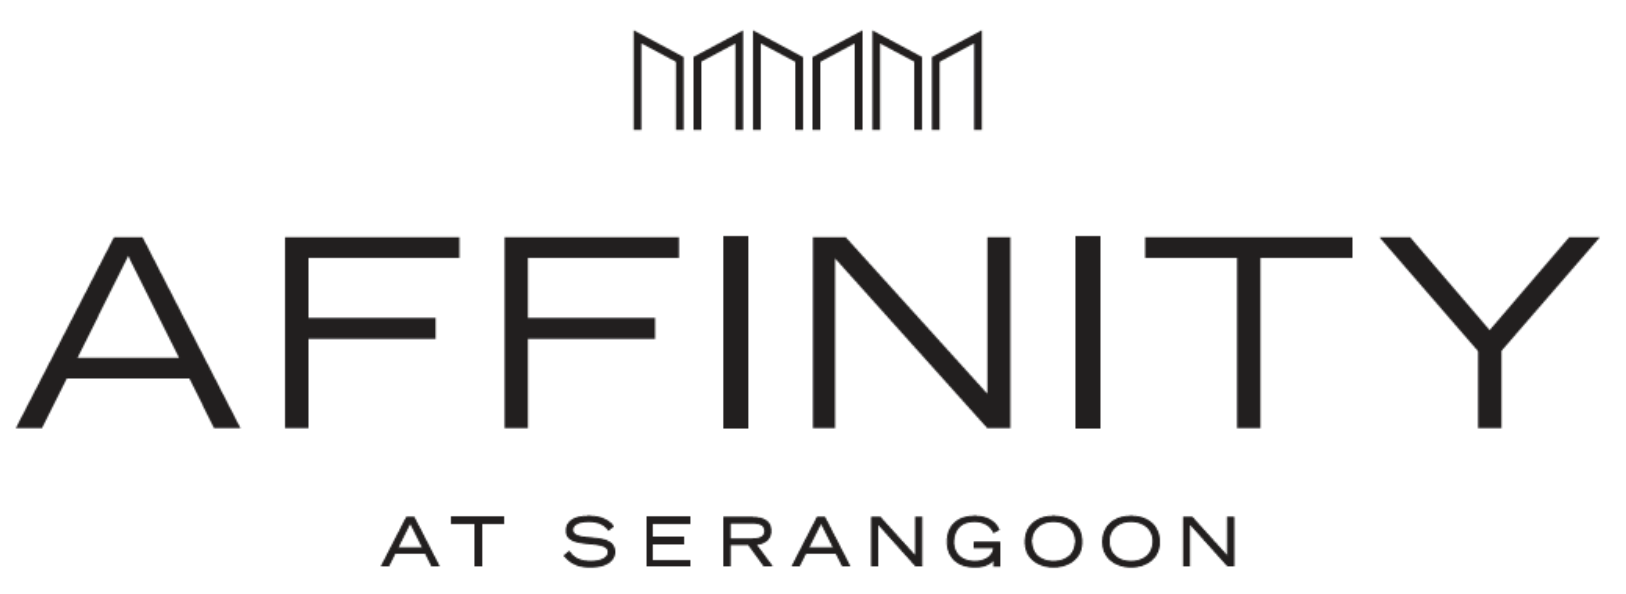 affinity-at-serangoon-logo